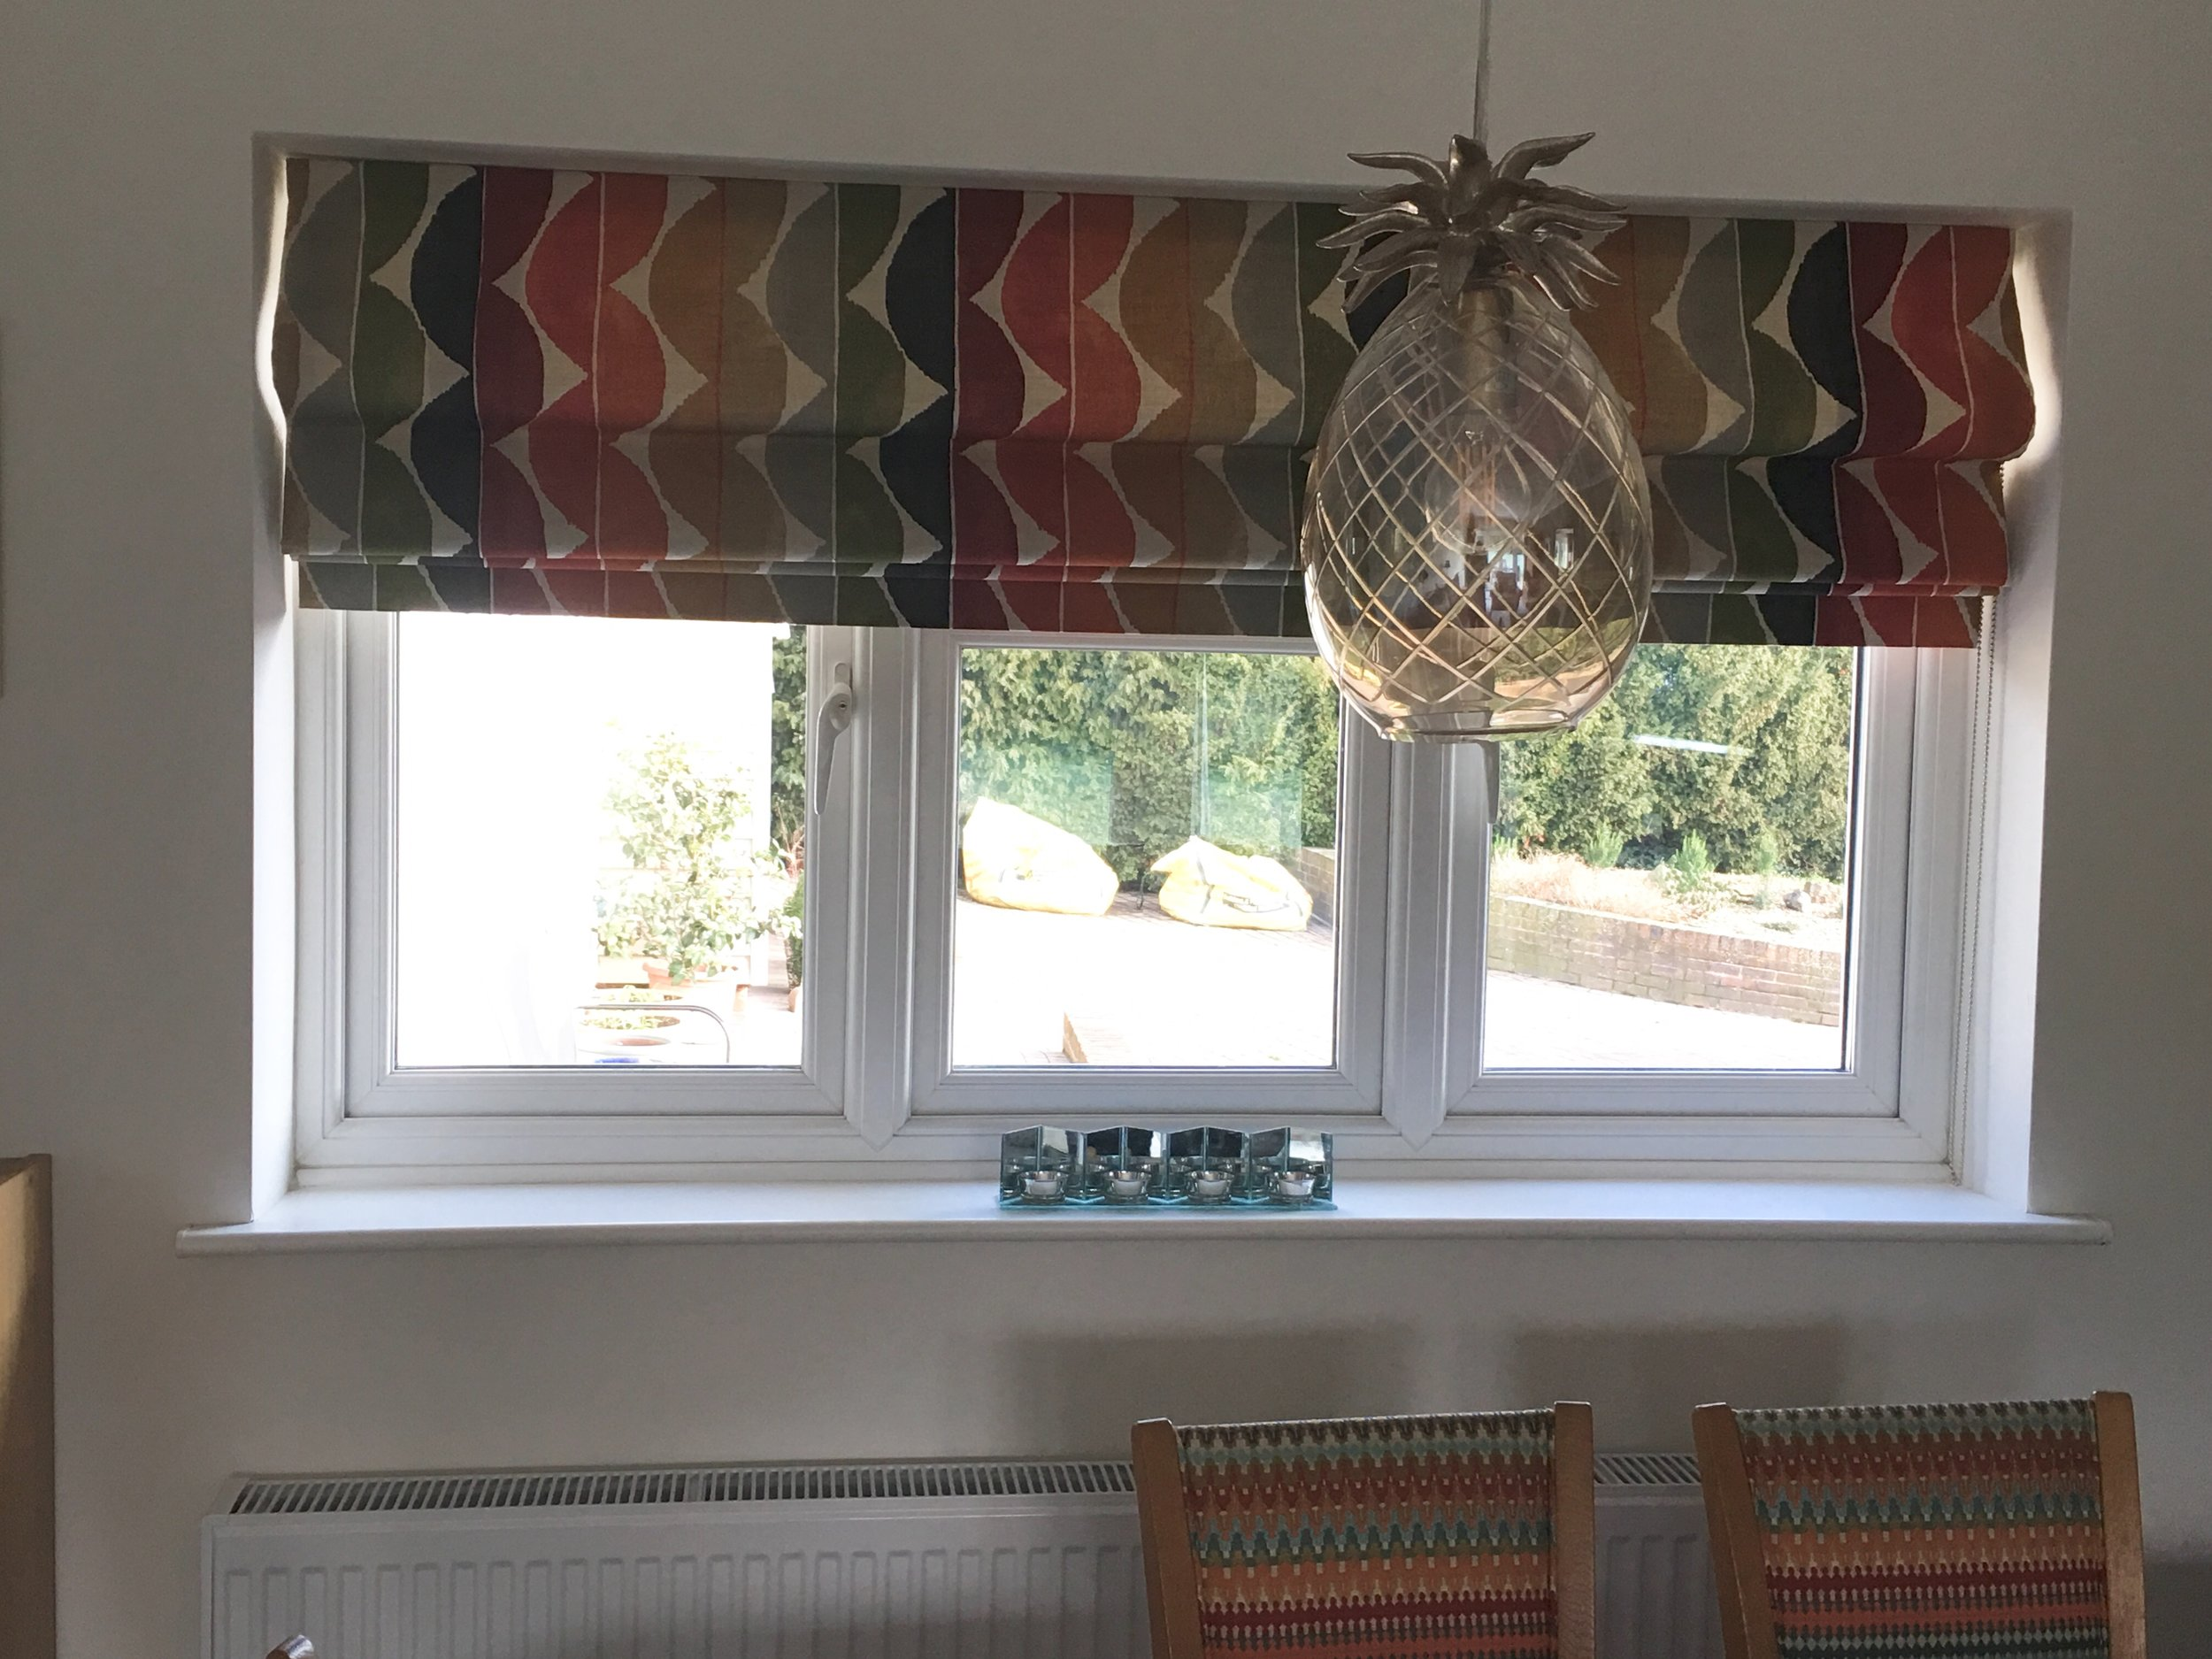 Geometric pattern works really well on the roman blind